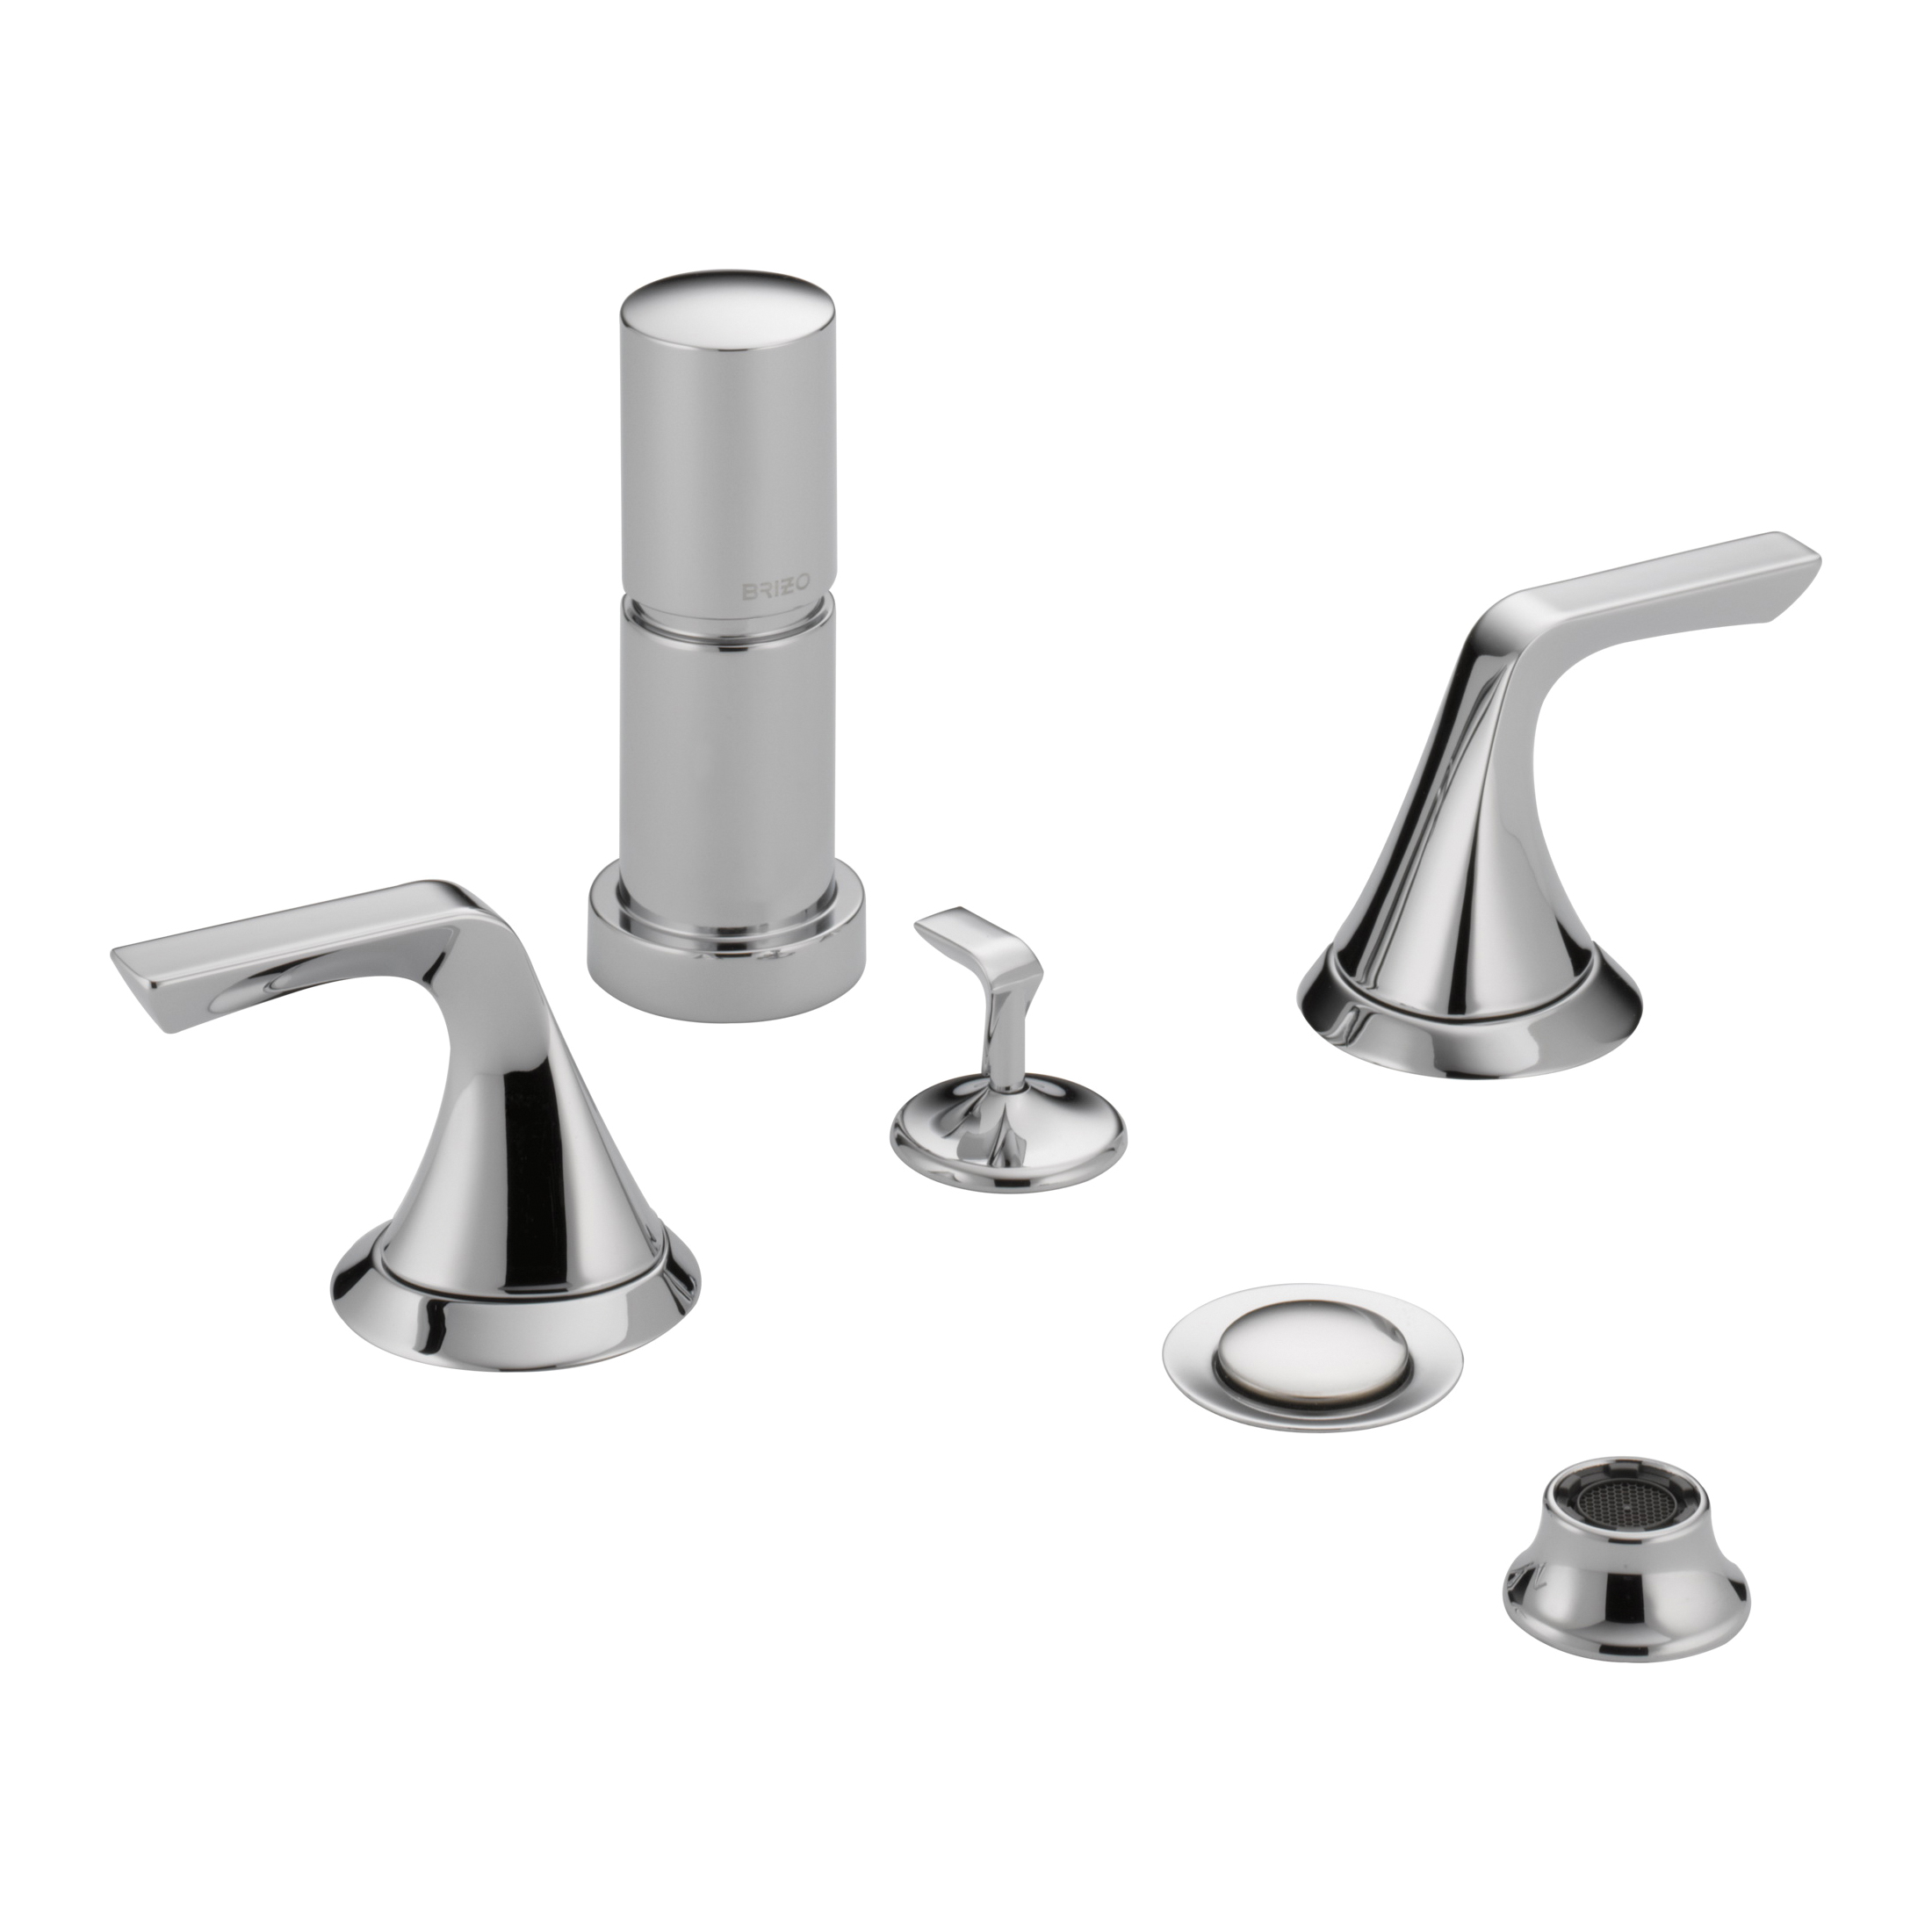 Brizo® 68450-PC Sotria™ Widespread Bidet Faucet, 5 to 8 in Center, 2 Handles, Pop-Up Drain, Chrome Plated, Domestic, Commercial